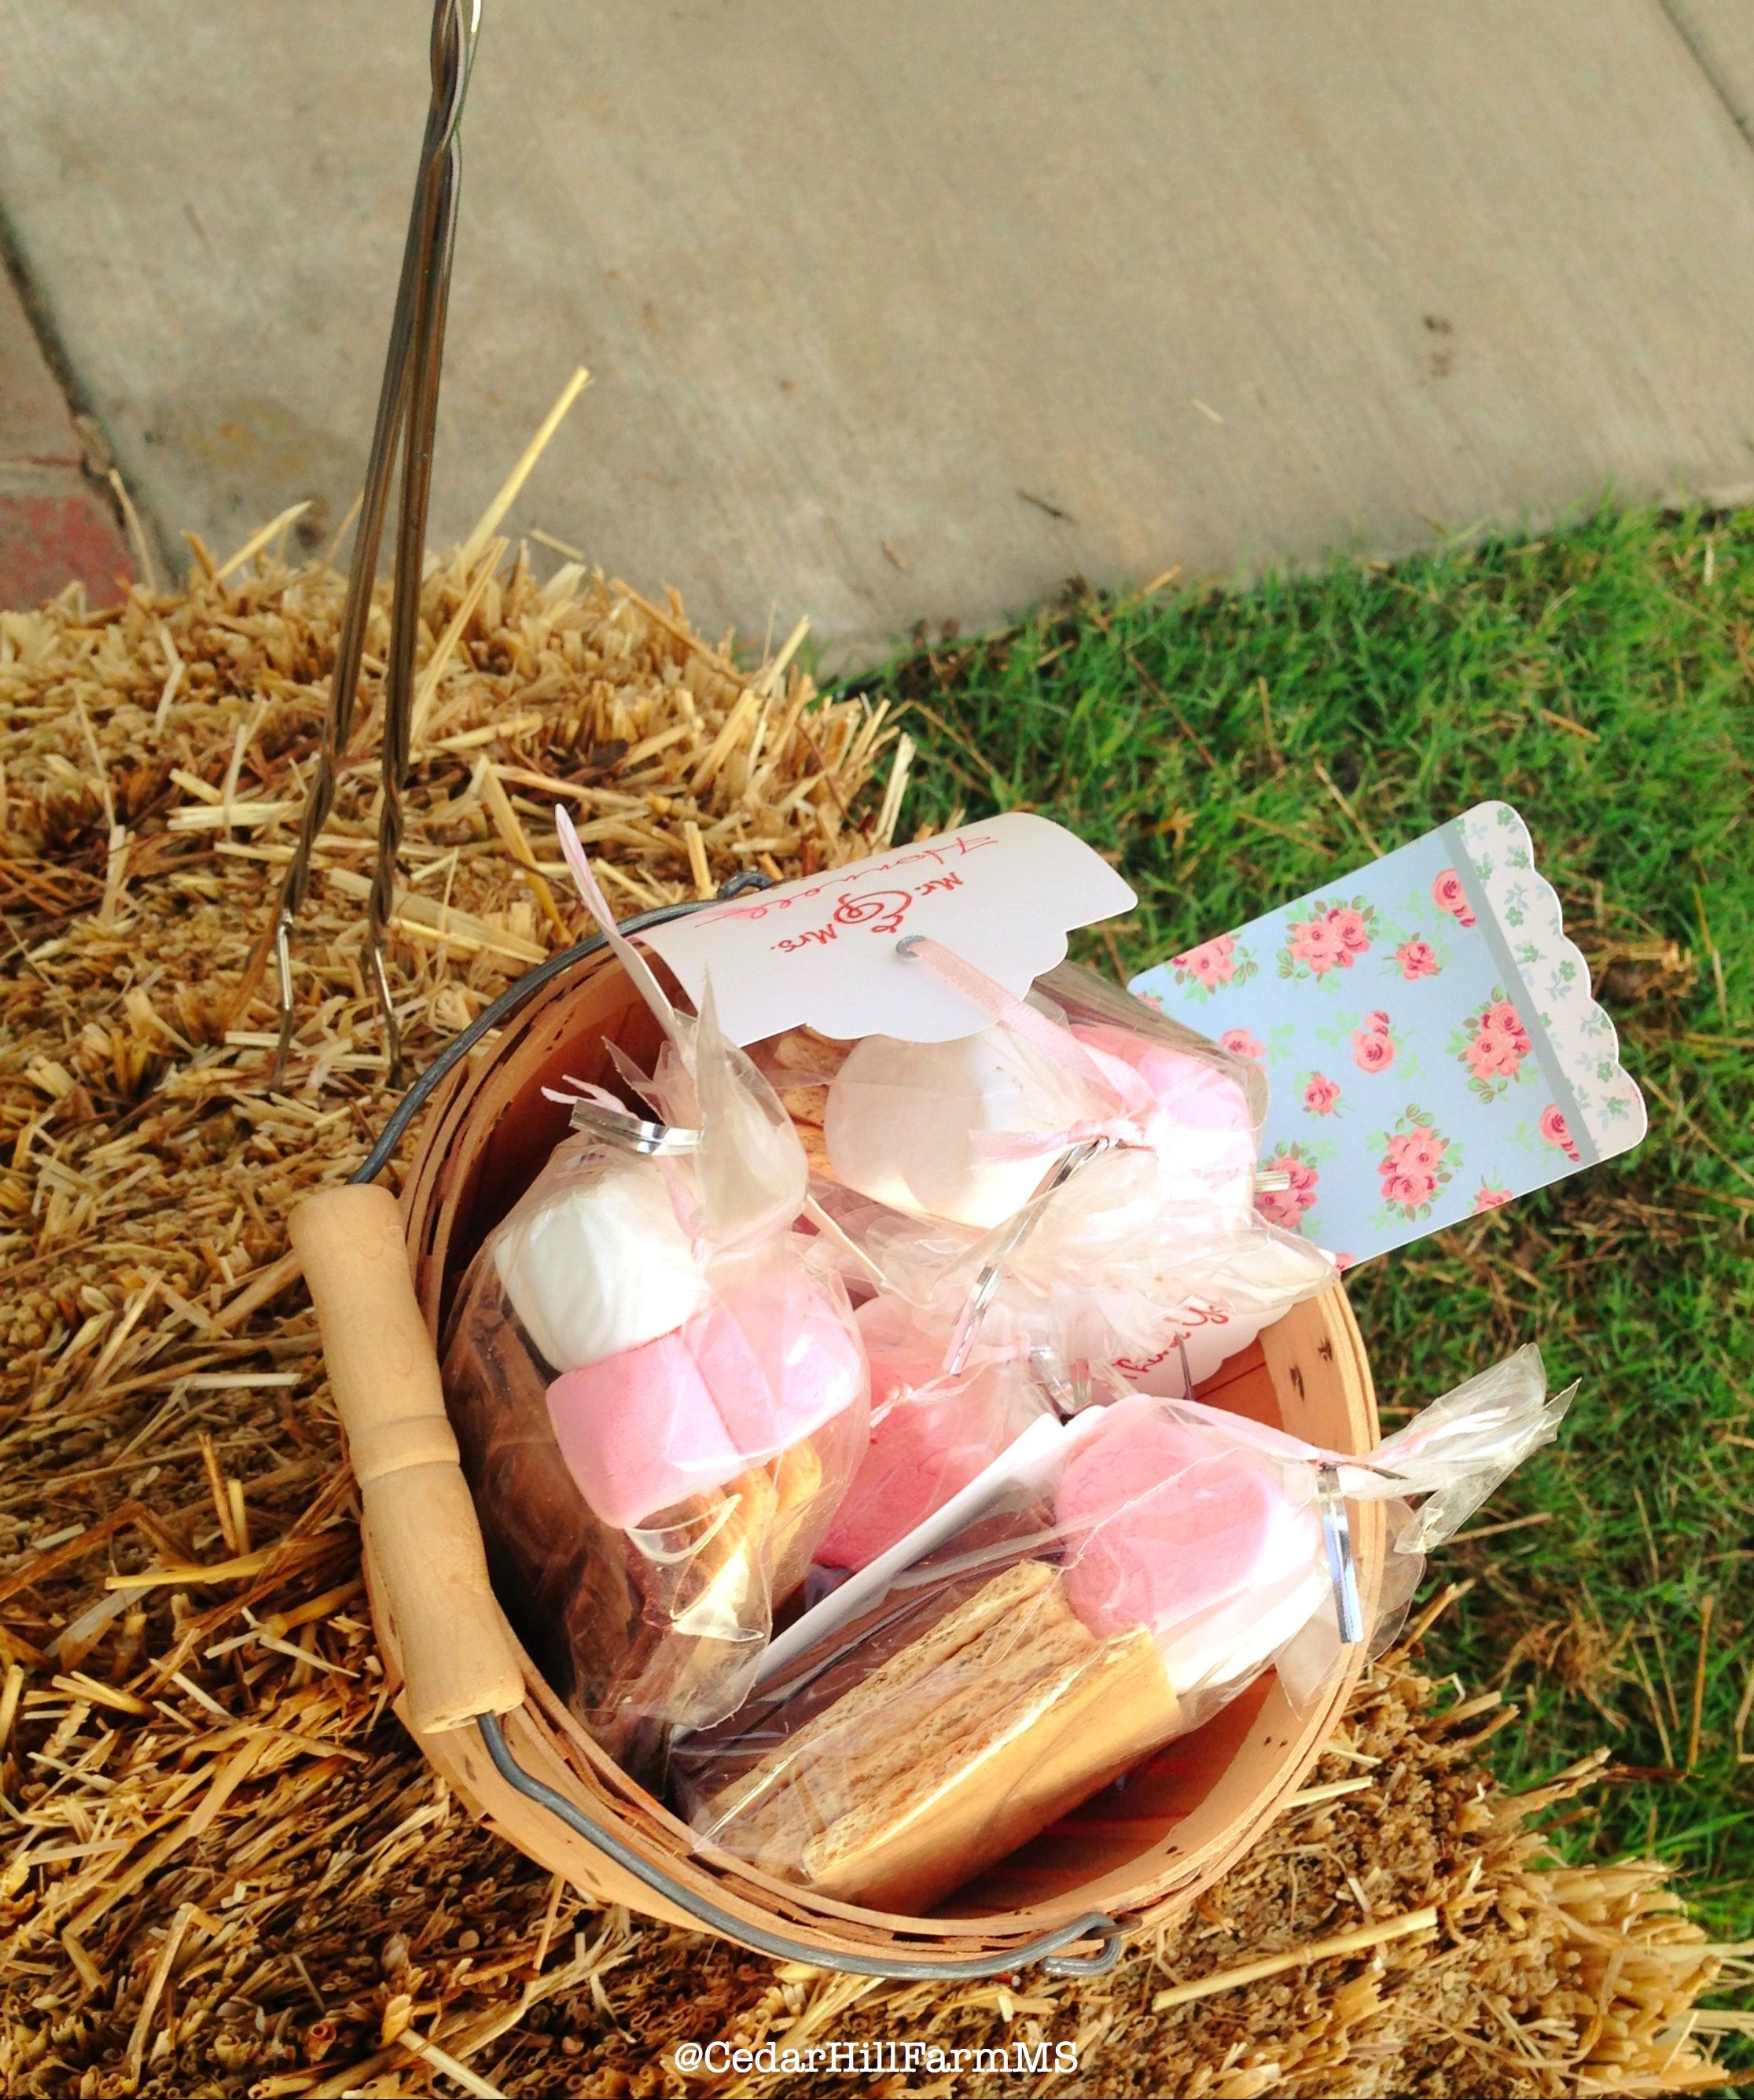 24 Outdoor Wedding Decoration Ideas: S'more Roasting Kit For Fun Around The Fire Pit